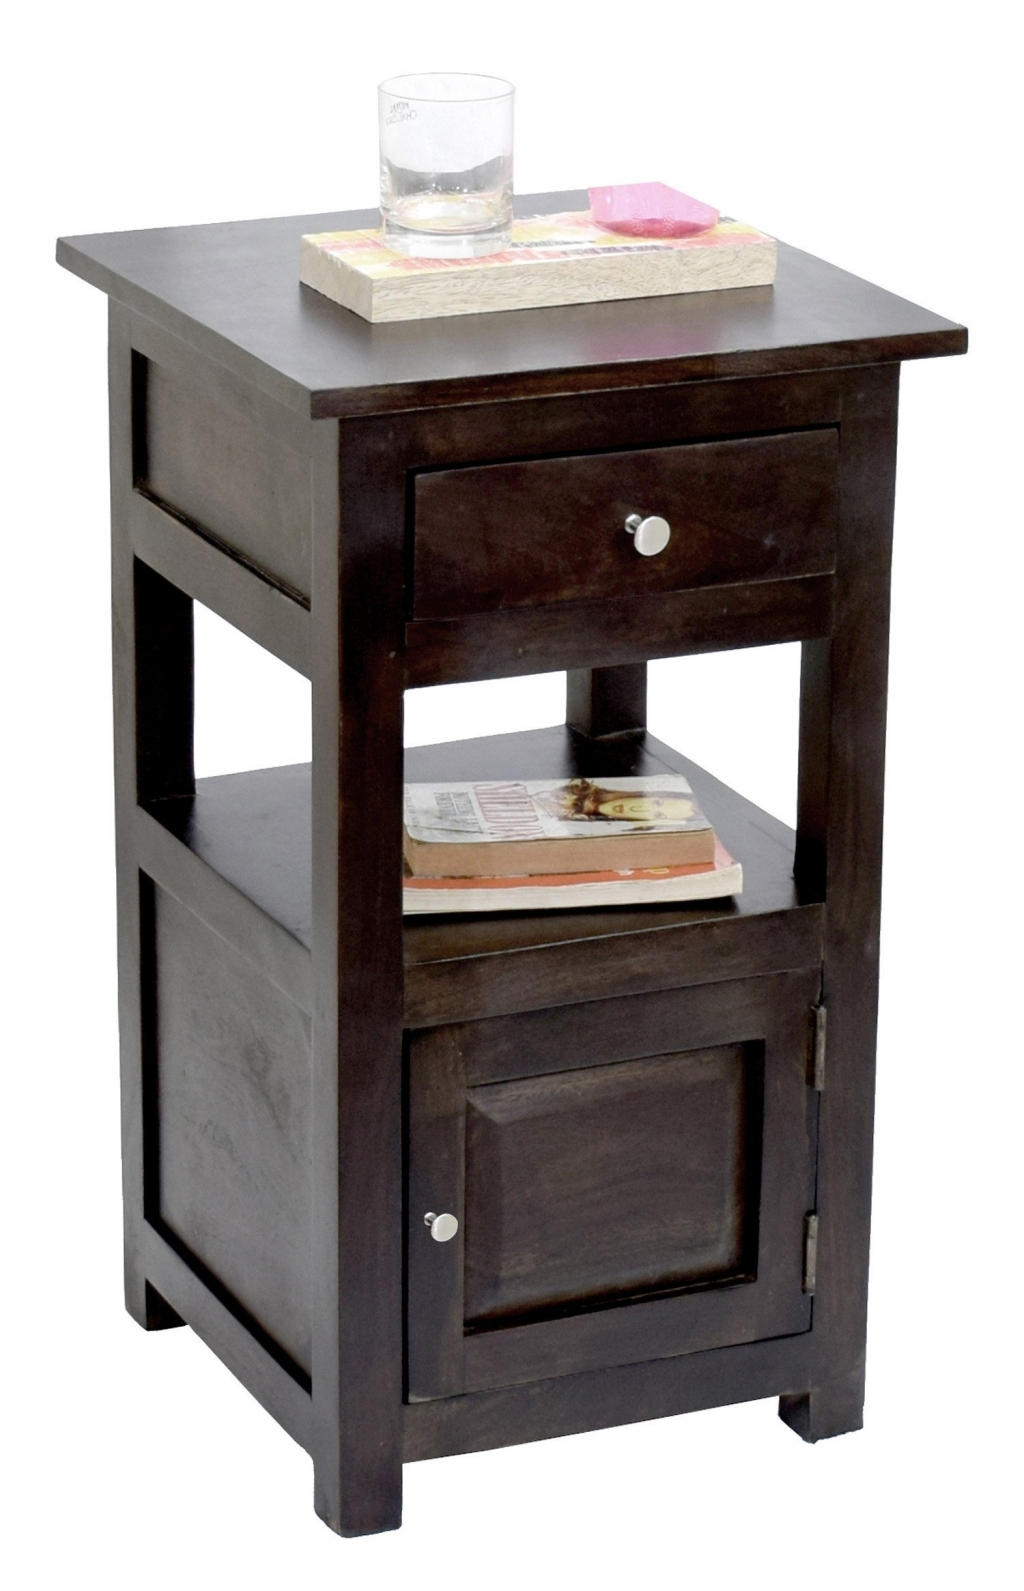 furniture corner accent table beautiful coffee magnificent best timbertaste sheesham wood draw door tanya side end distressed blue console with shelves pottery barn lamps battery